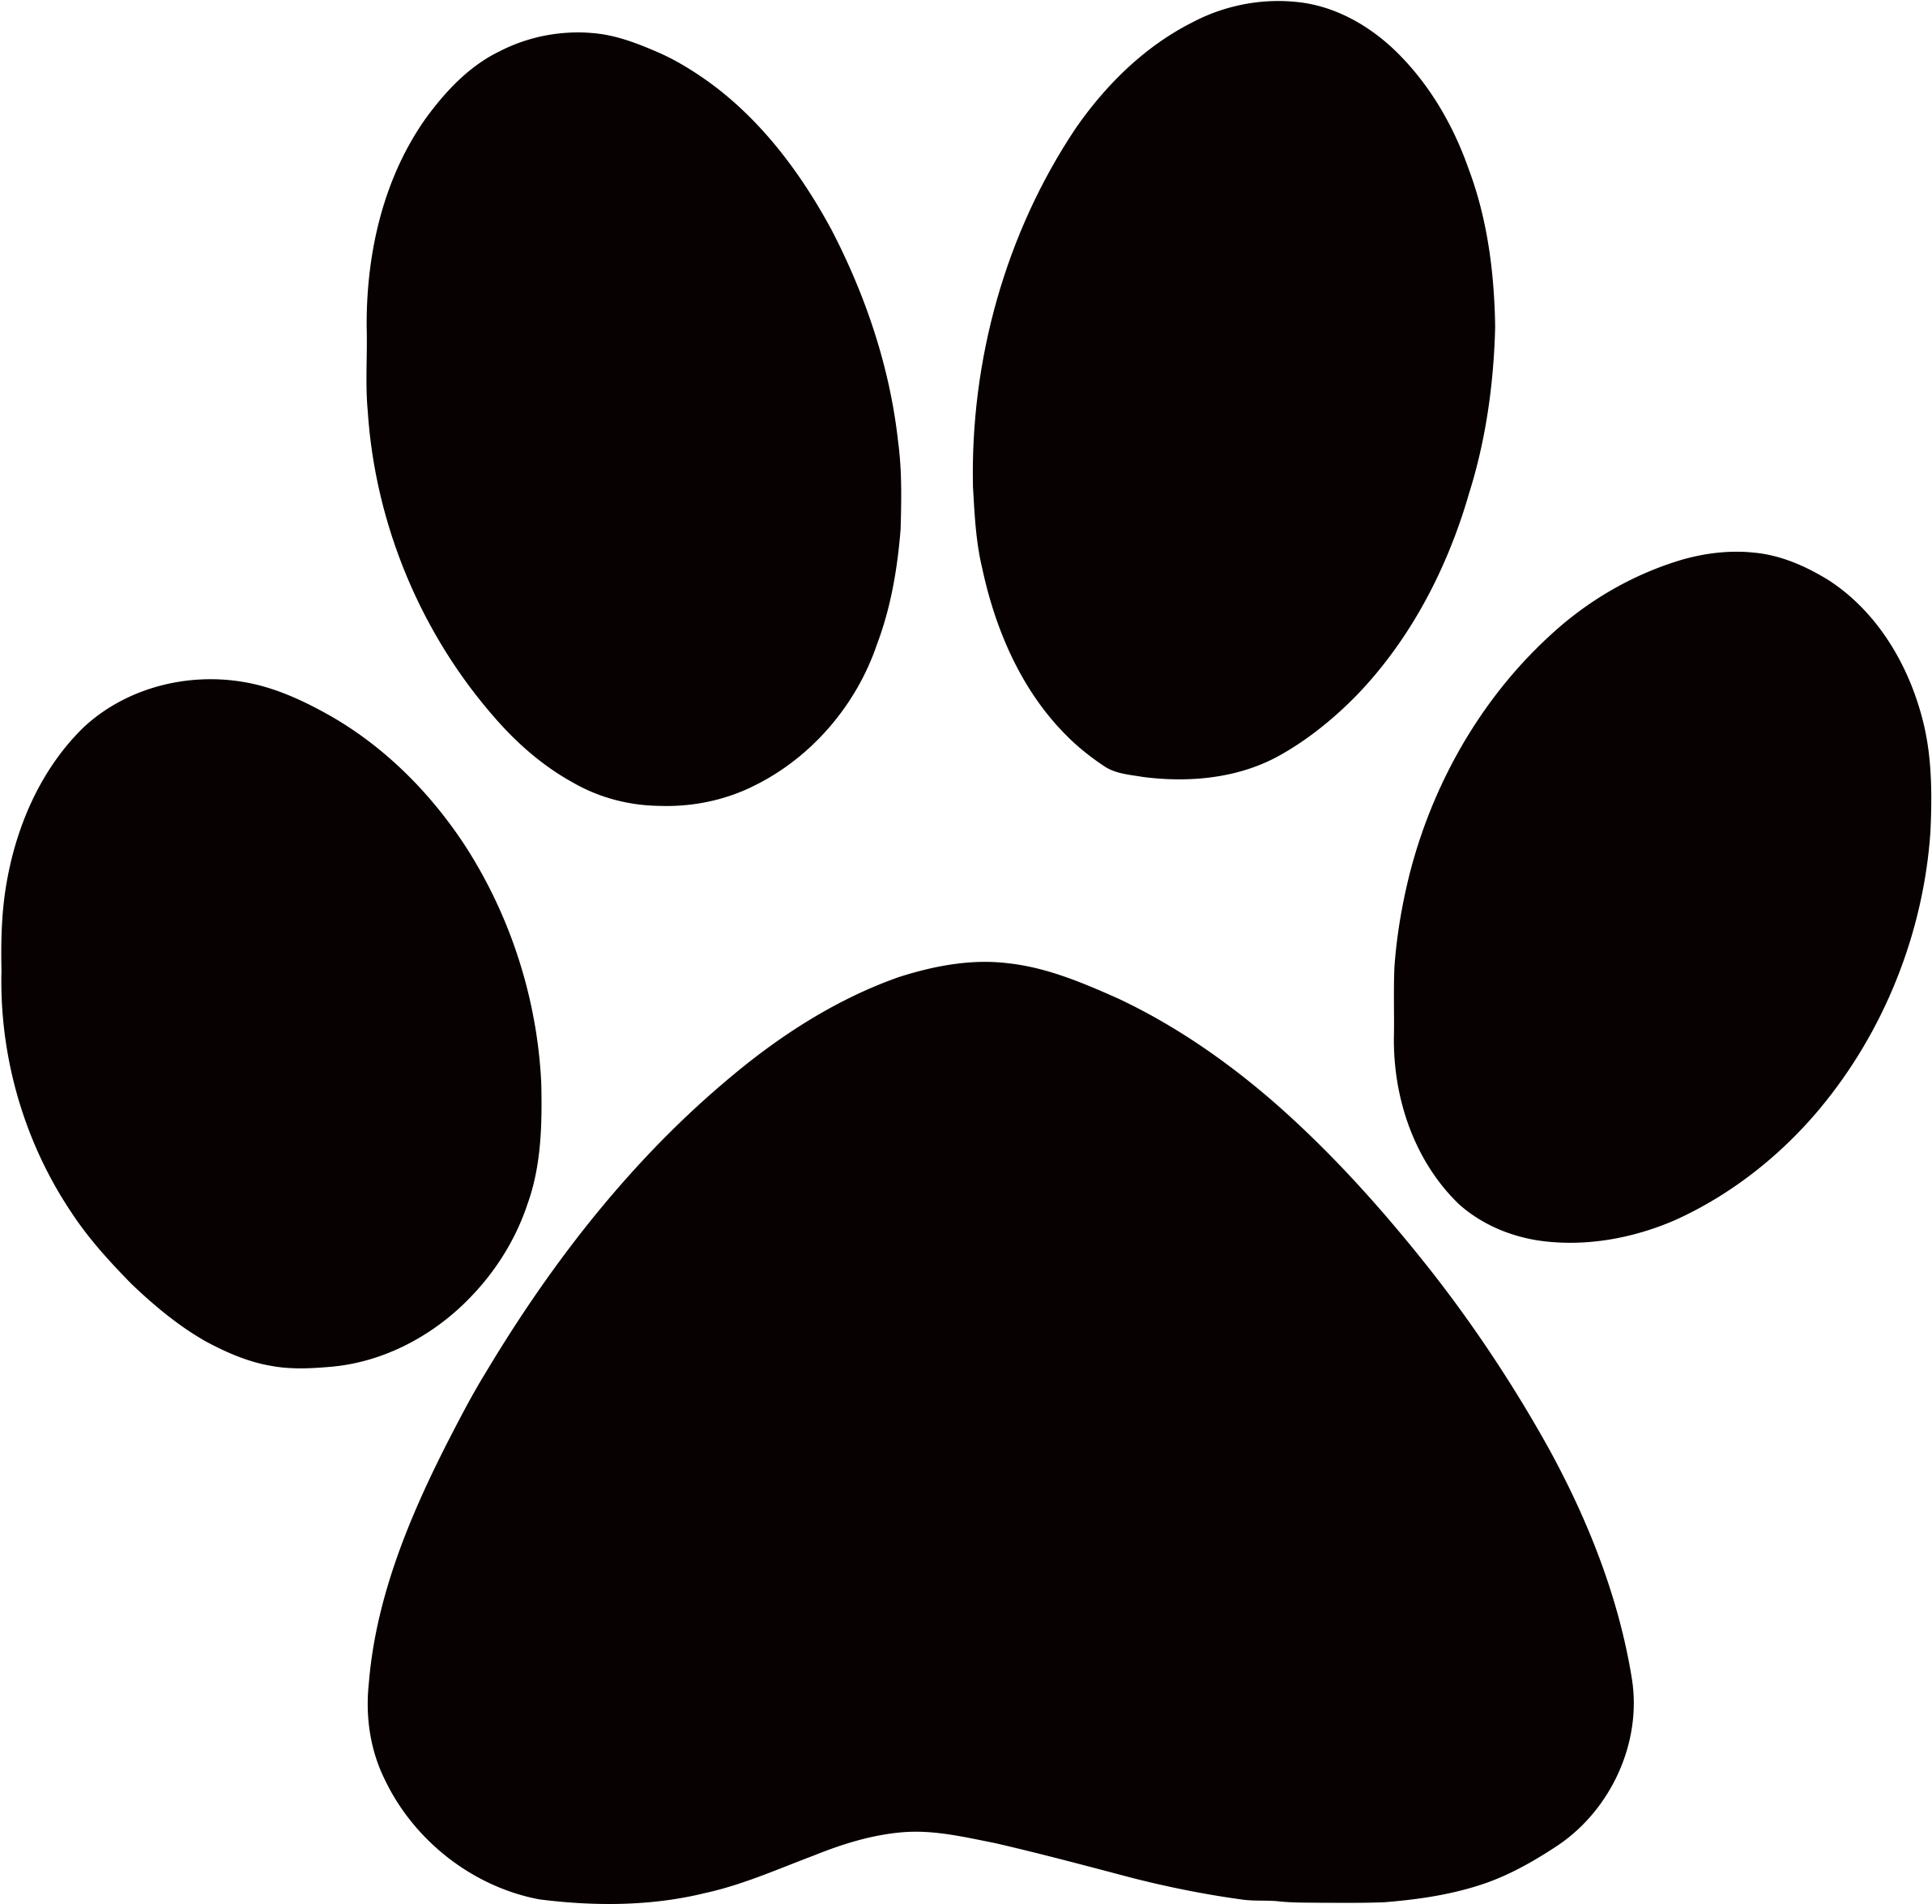 Free Paw Print Clip Art Transparent Background, Download.